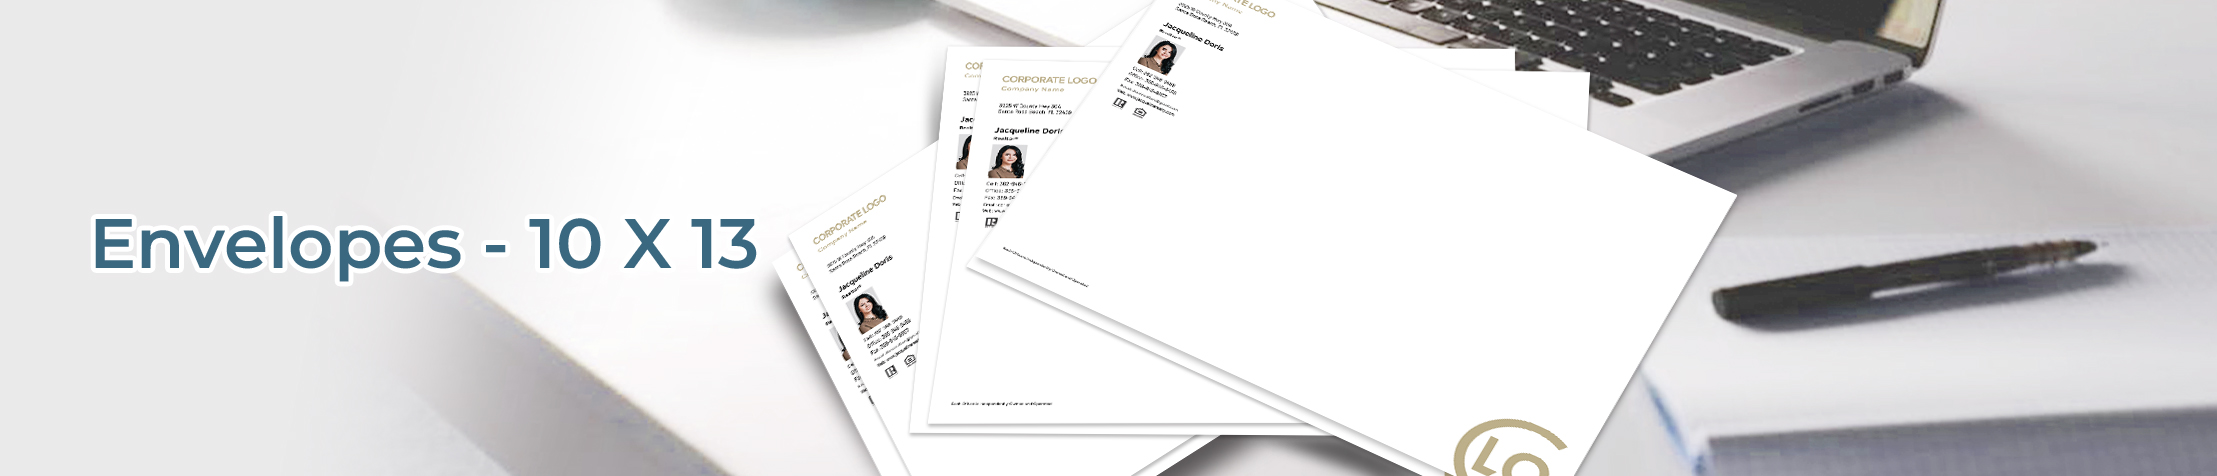 Century 21 Real Estate 10 X 13 Envelopes - Century 21  10 x 13 document envelopes for Realtors, real estate envelope templates | BestPrintBuy.com